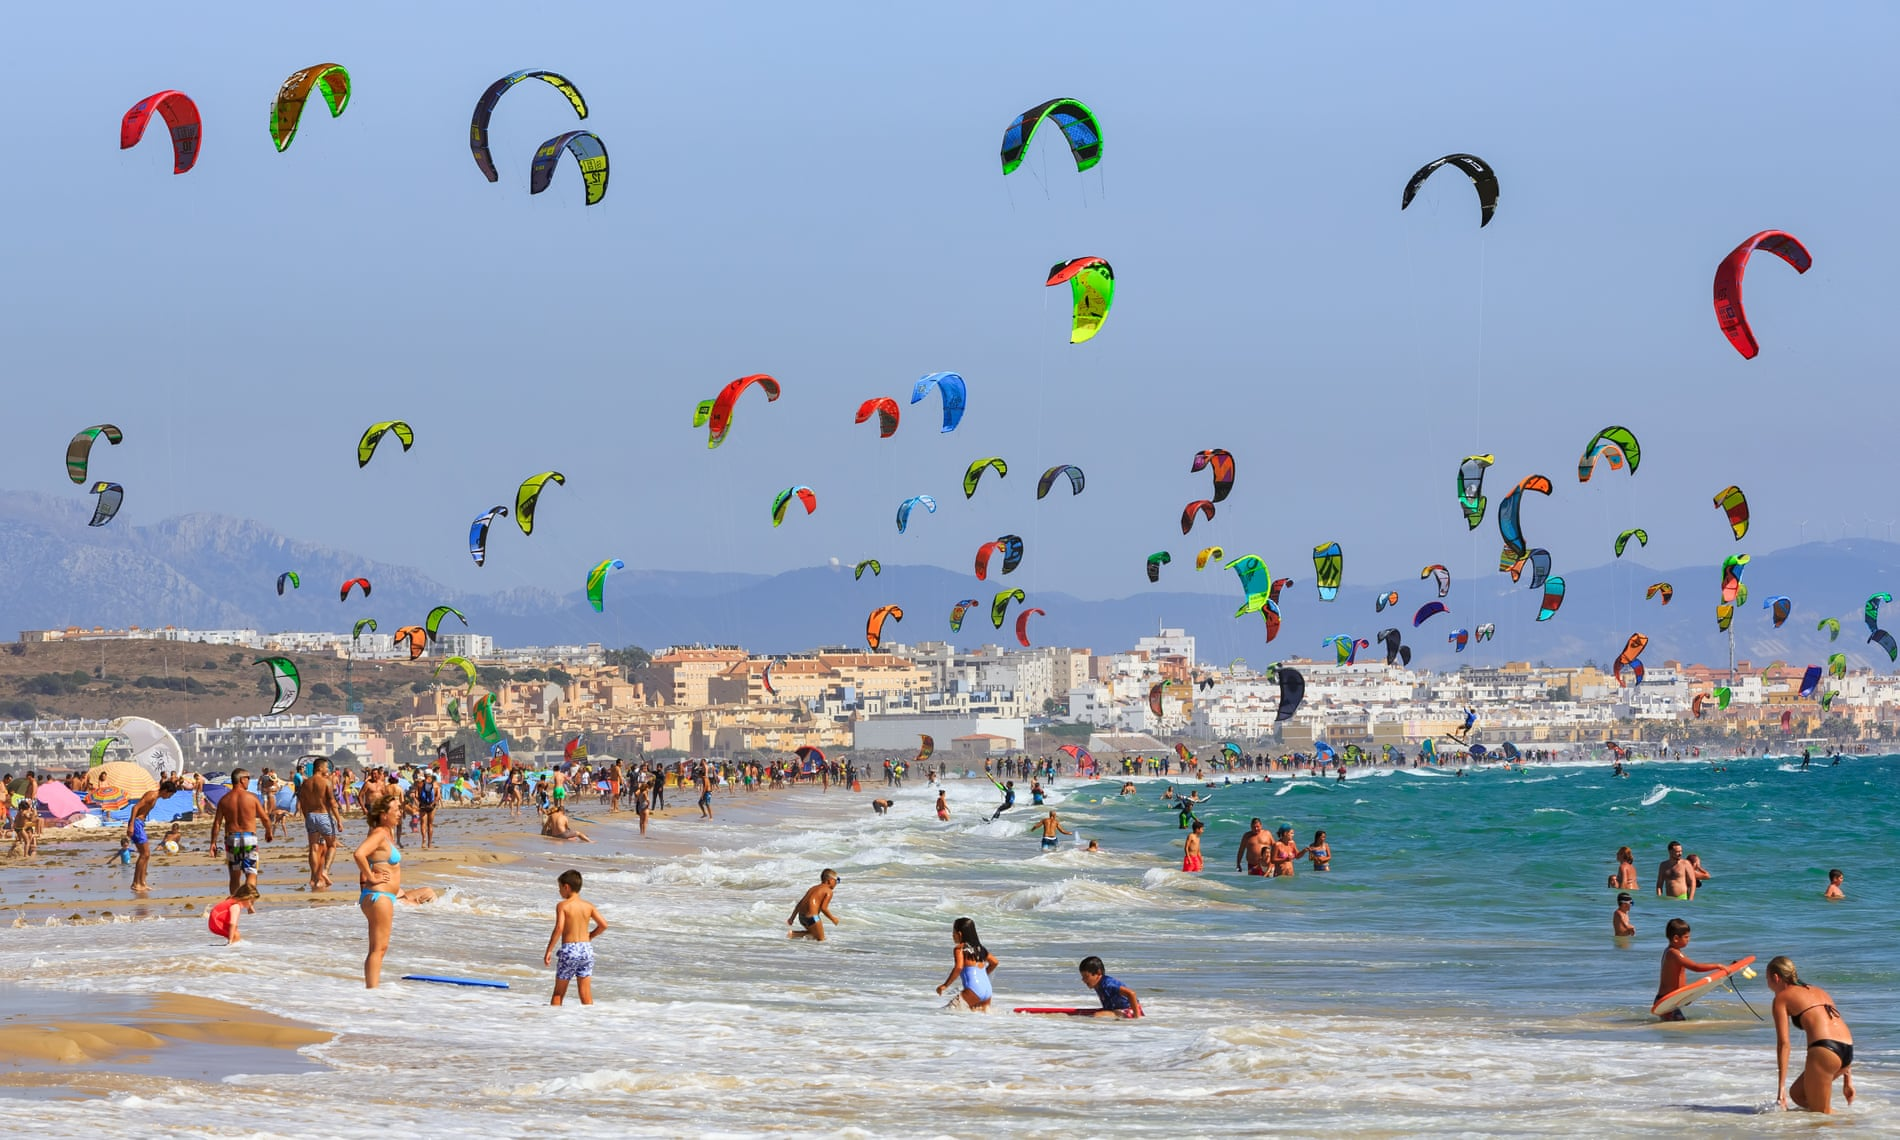 Tarifa holiday guide: the best activities, bars, restaurants and hotels